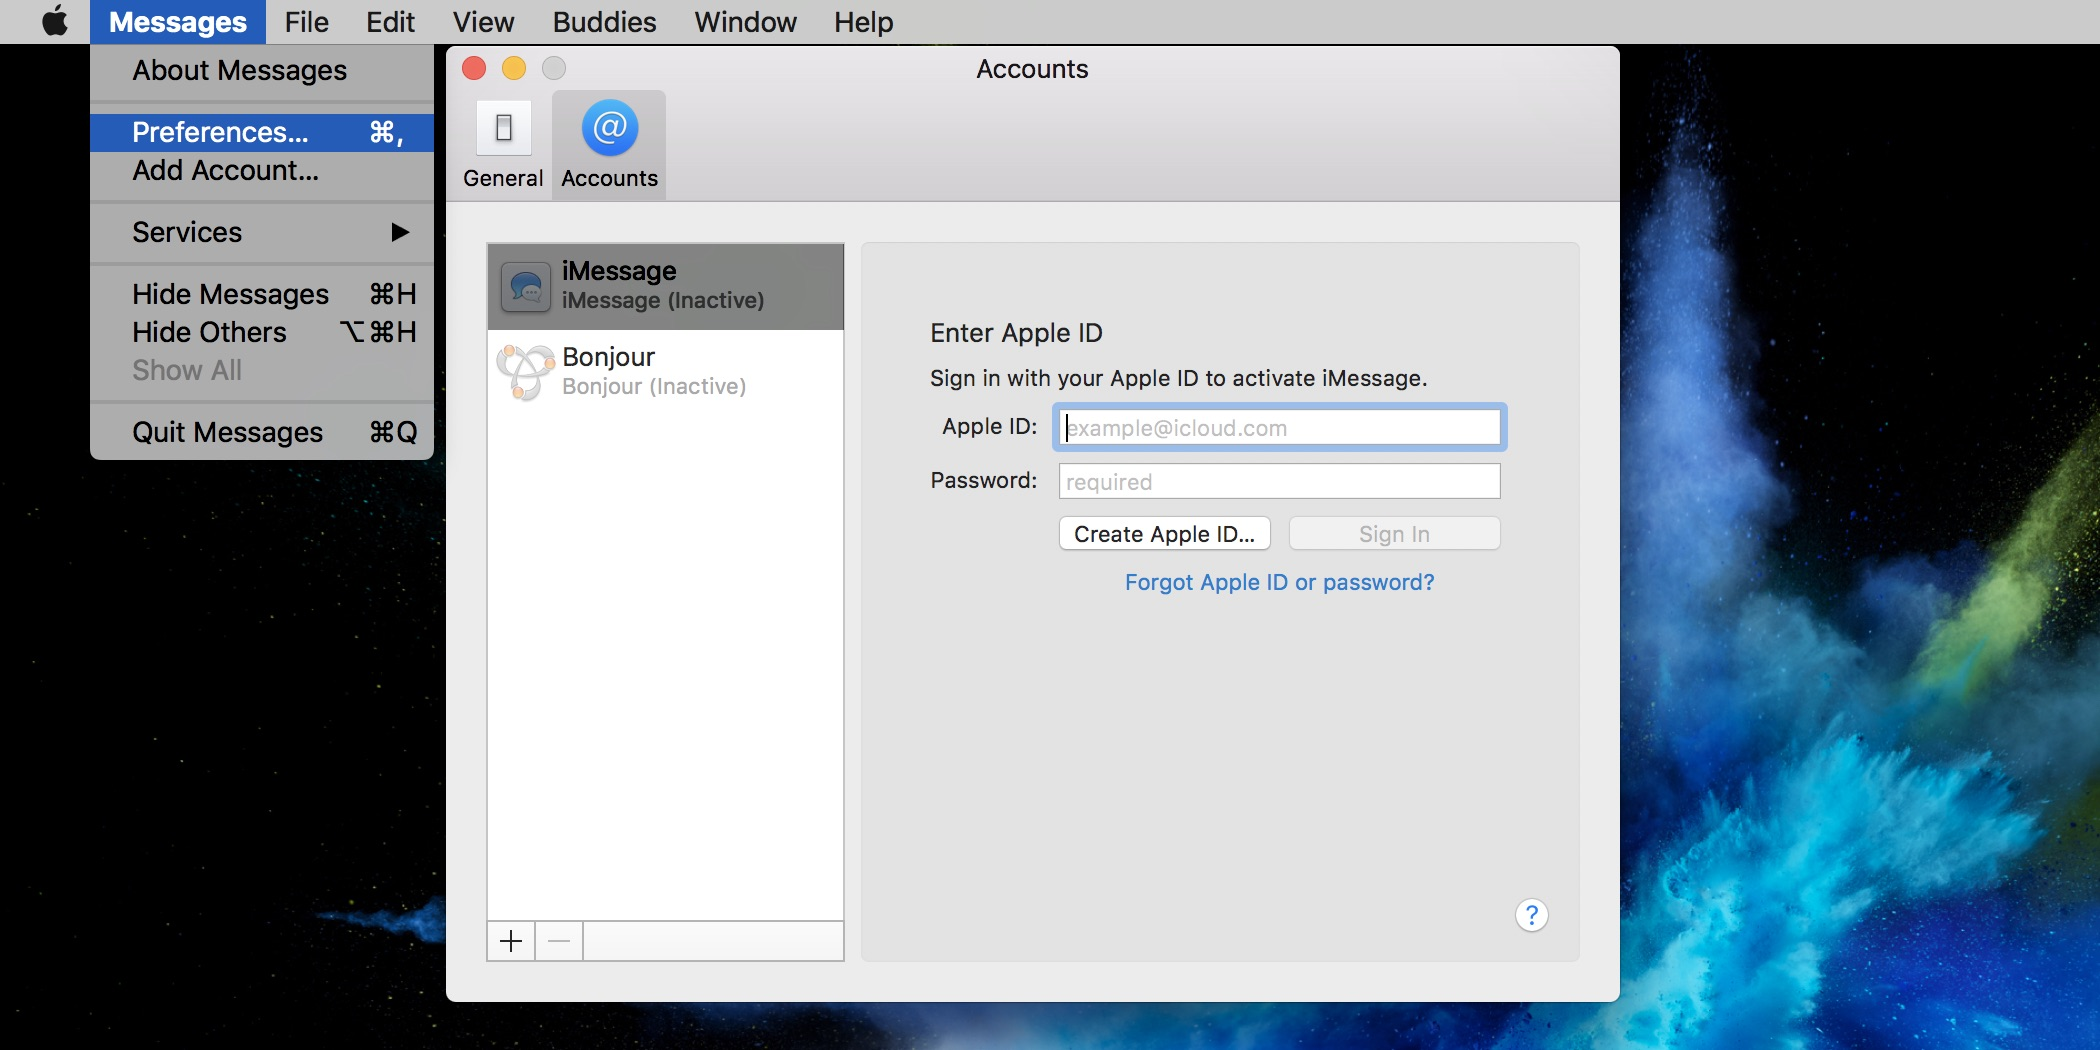 Image showing how to sign in with Apple ID for iMessage in Messages preferences